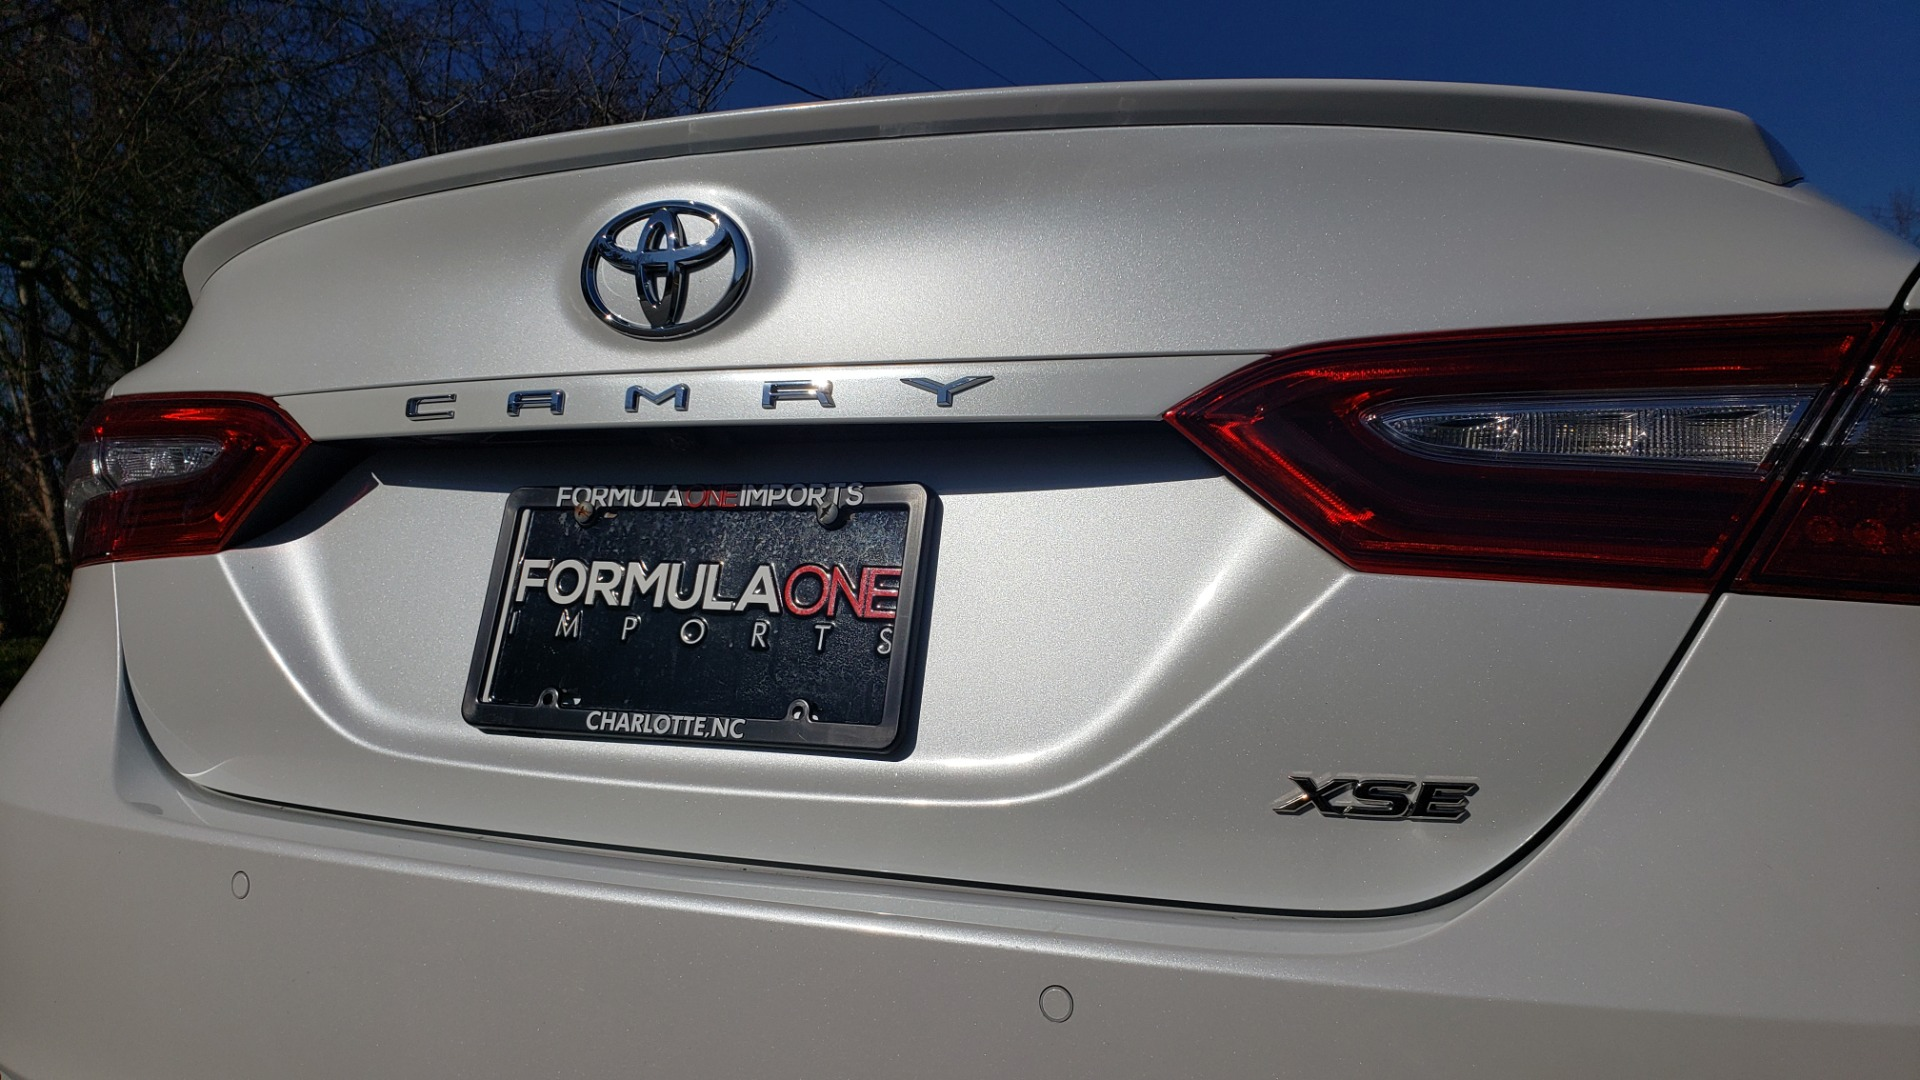 Used 2018 Toyota CAMRY XSE 2.5L SEDAN / 8-SPD AUTO / PANO-ROOF / 19IN WHEELS for sale $22,995 at Formula Imports in Charlotte NC 28227 29